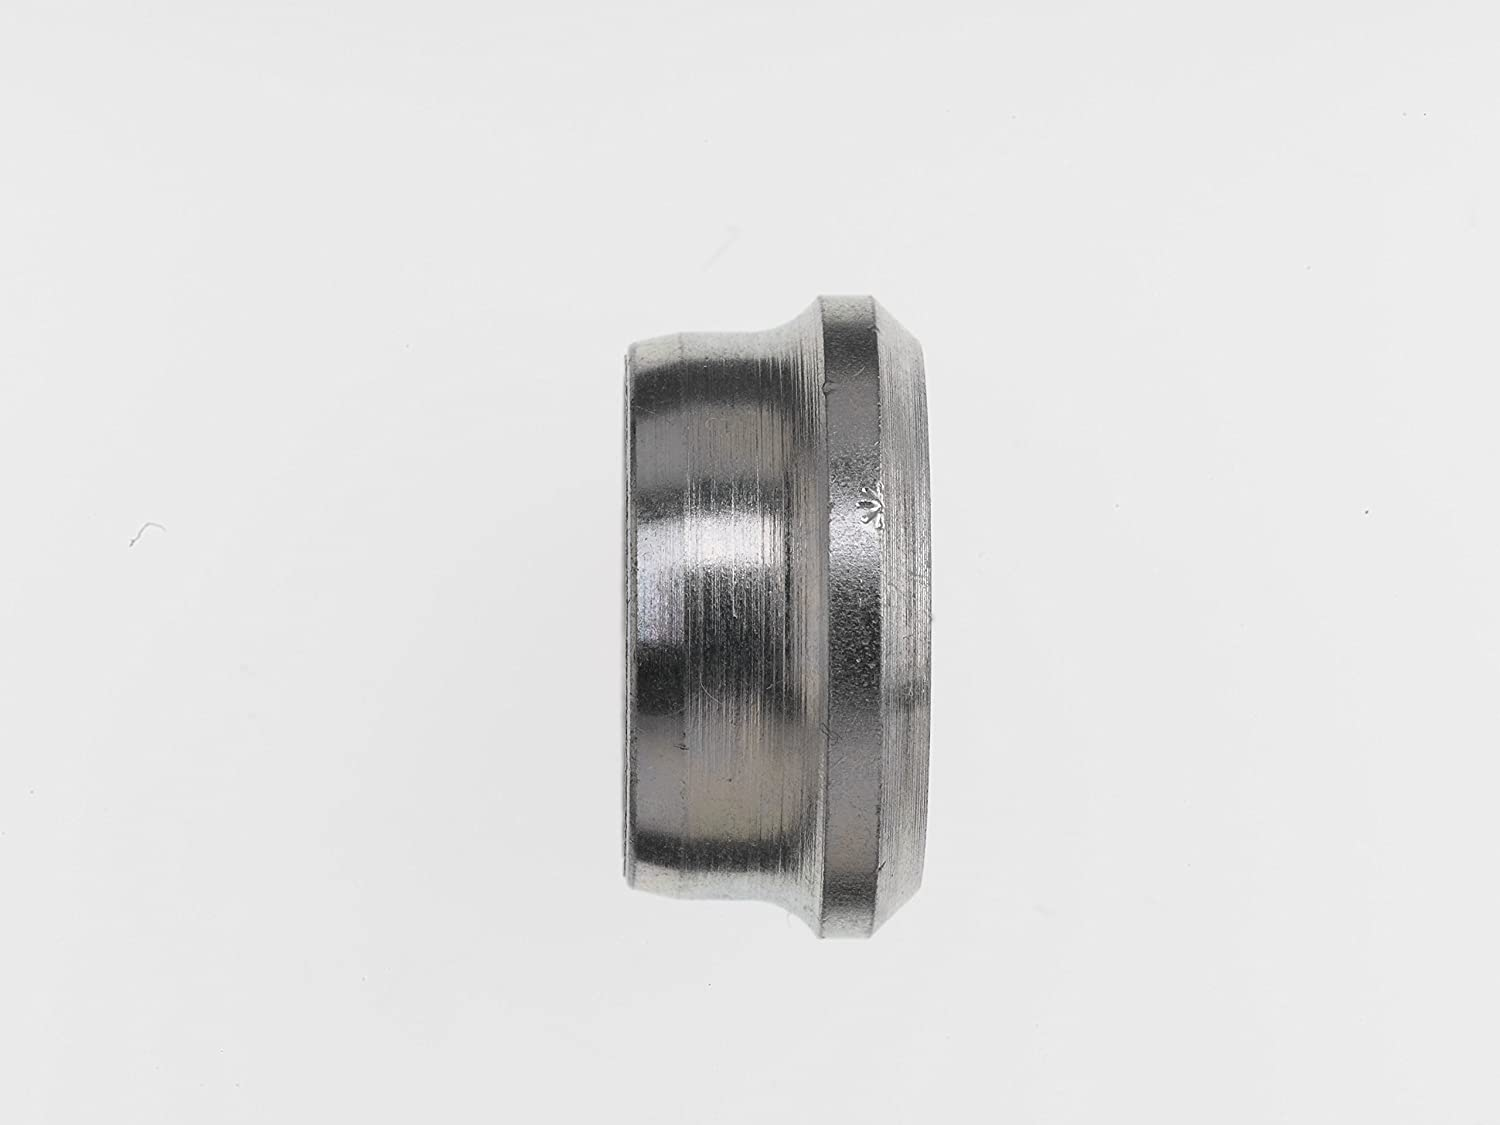 12 mm Tube Size Inc. Thread Brennan Industries D8006-12 Steel Double Bite Ring